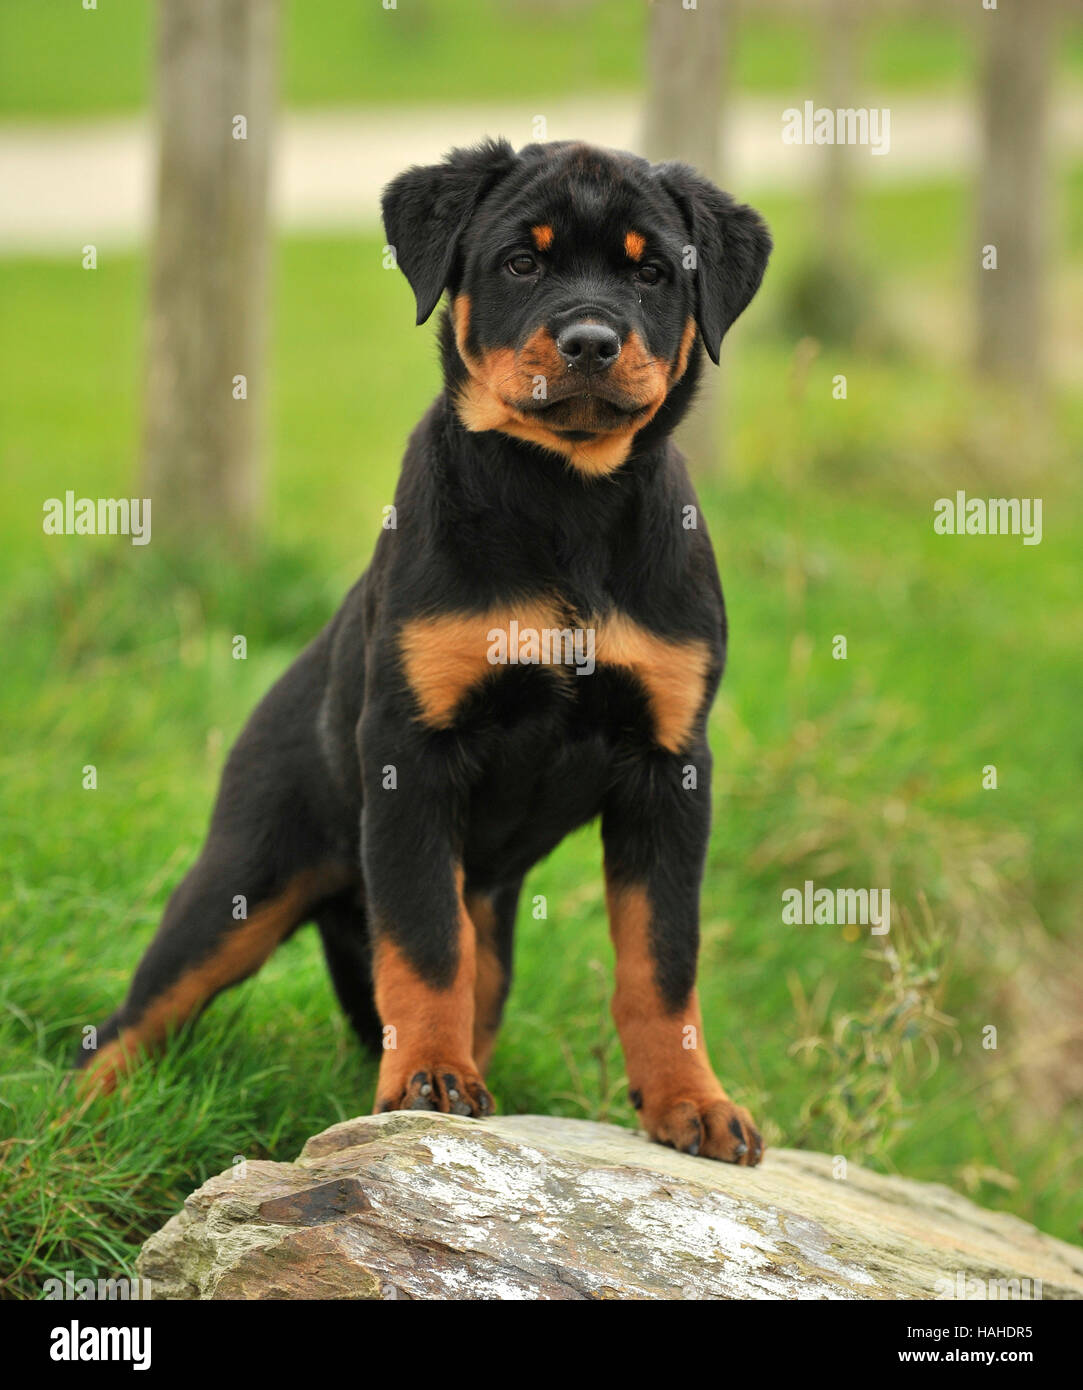 Rottweiler Puppy 15 Weeks Old Stock Photo 127003161 Alamy